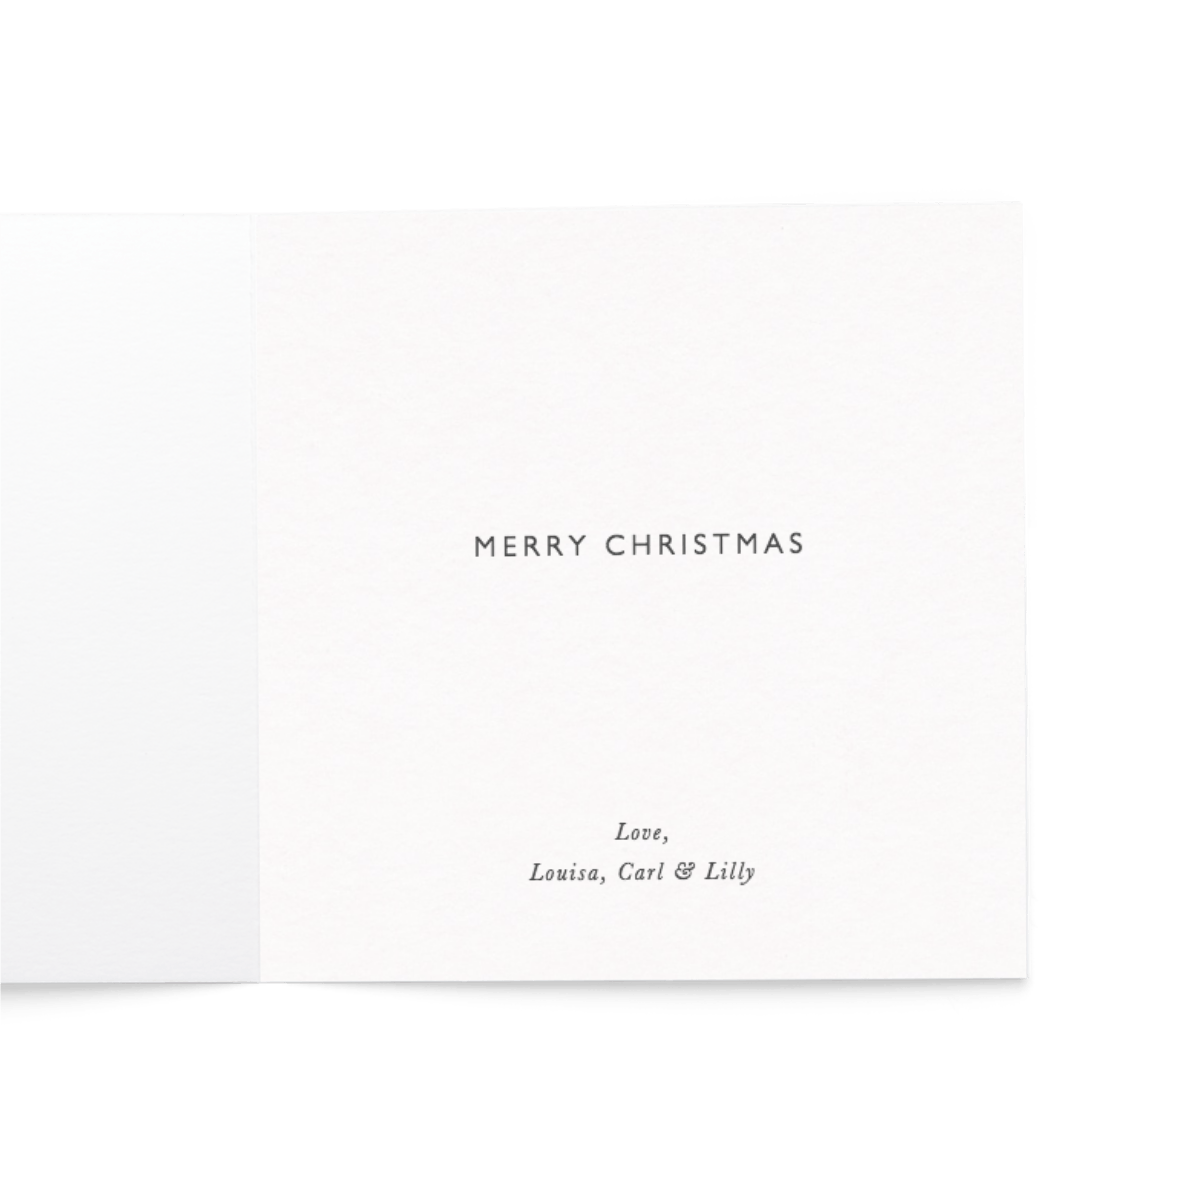 Https%3a%2f%2fwww.papier.com%2fproduct image%2f12596%2f21%2fmerry christmas 3173 inside 1477316294.png?ixlib=rb 1.1